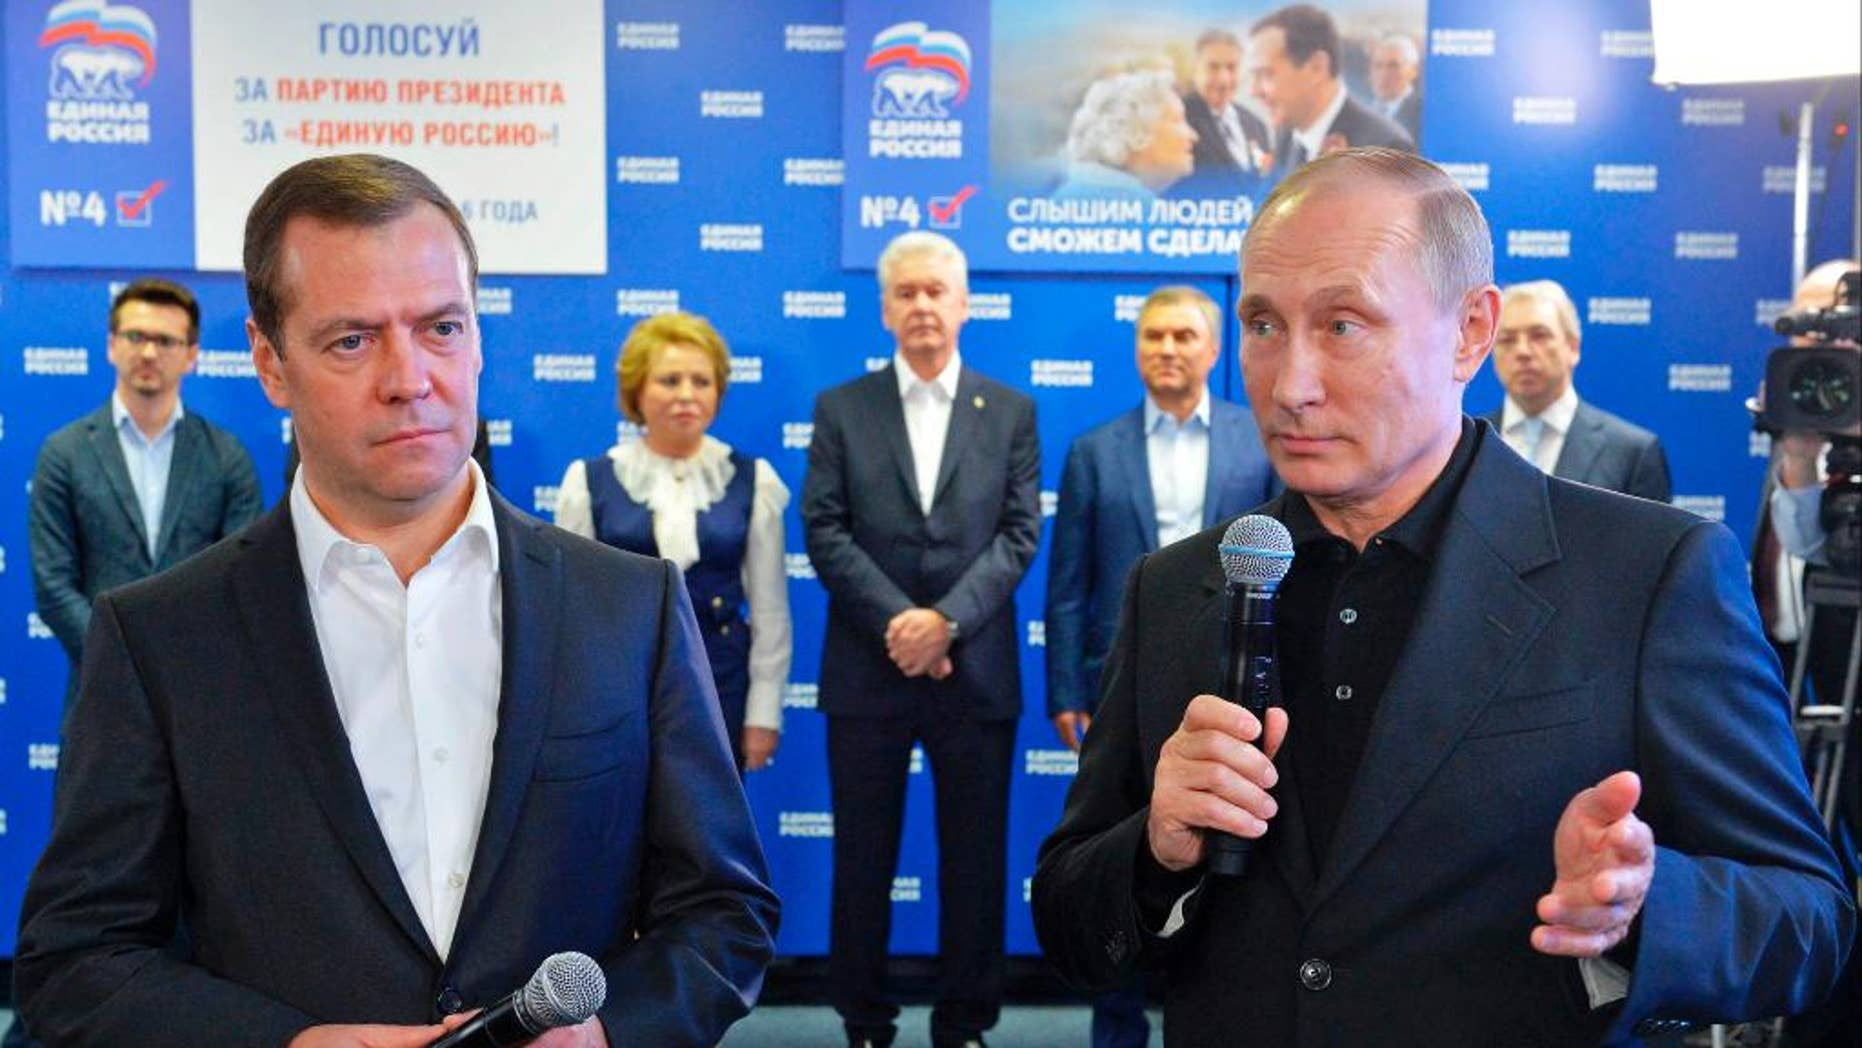 Russian President Vladimir Putin, right, and Russian Prime Minister Dmitry Medvedev, left, on Sunday.